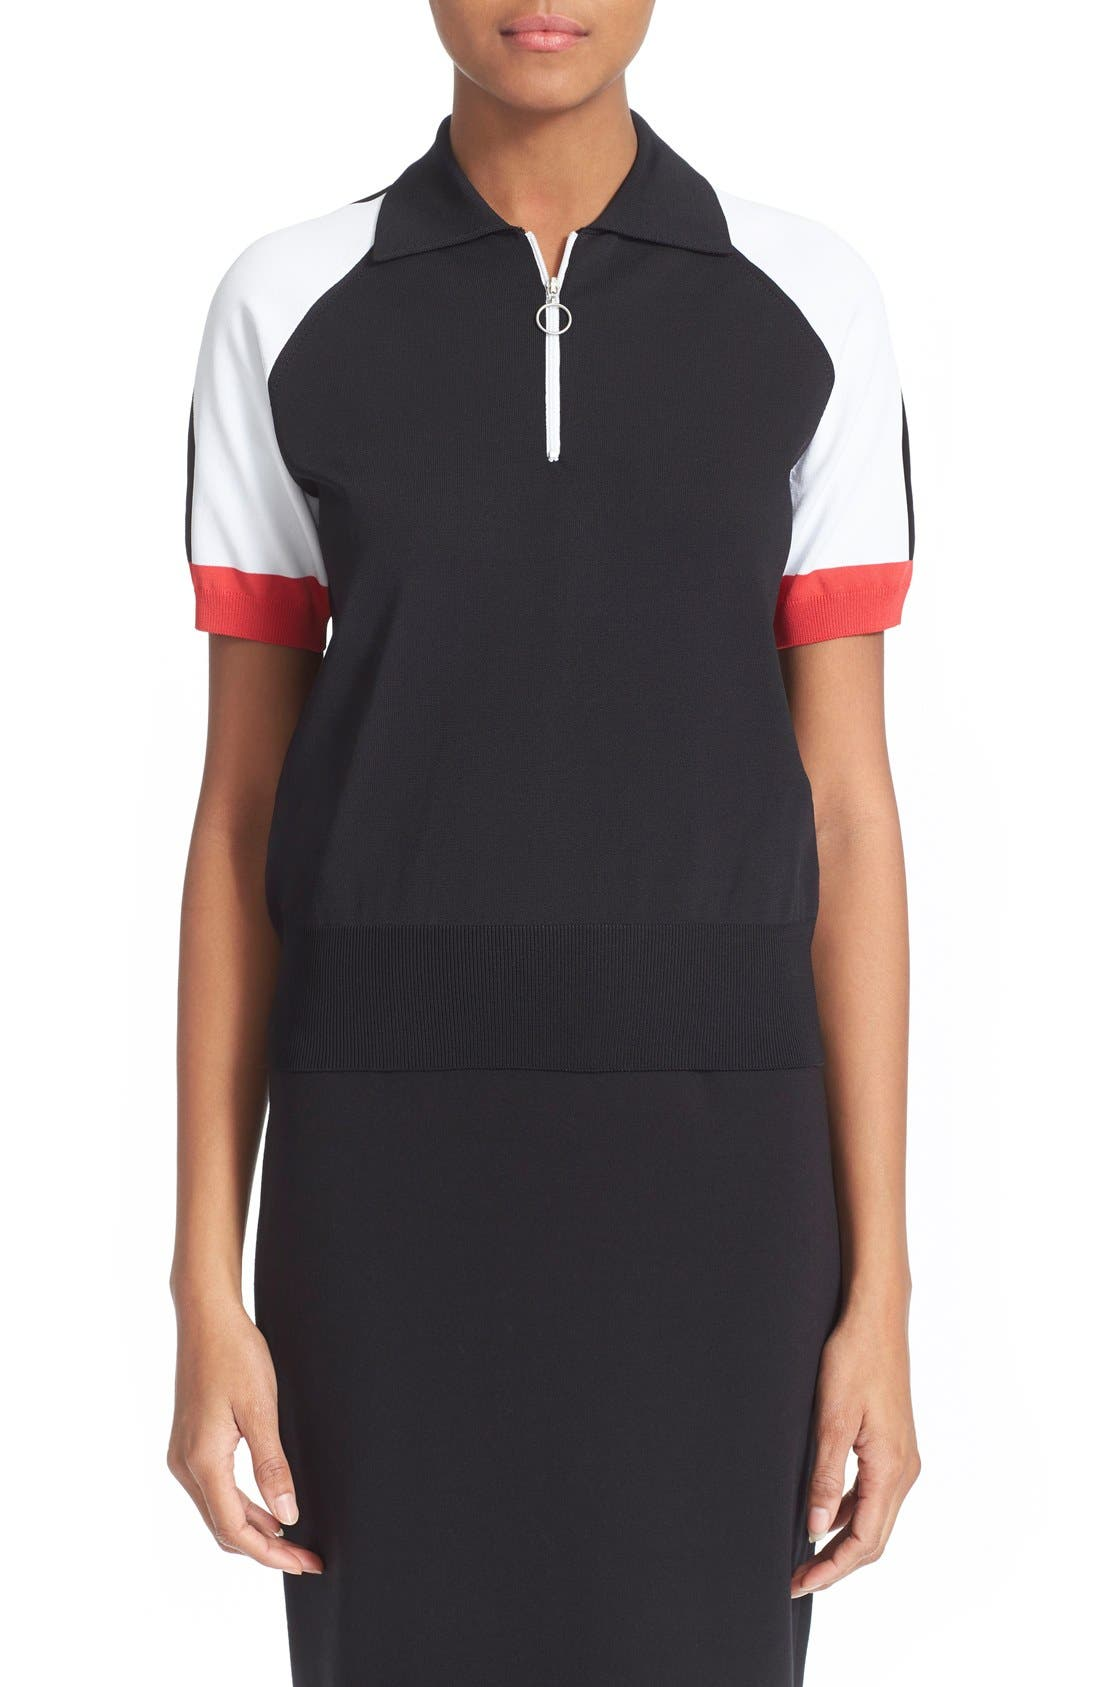 Alternate Image 1 Selected - T by Alexander Wang Colorblock Jersey Polo Top